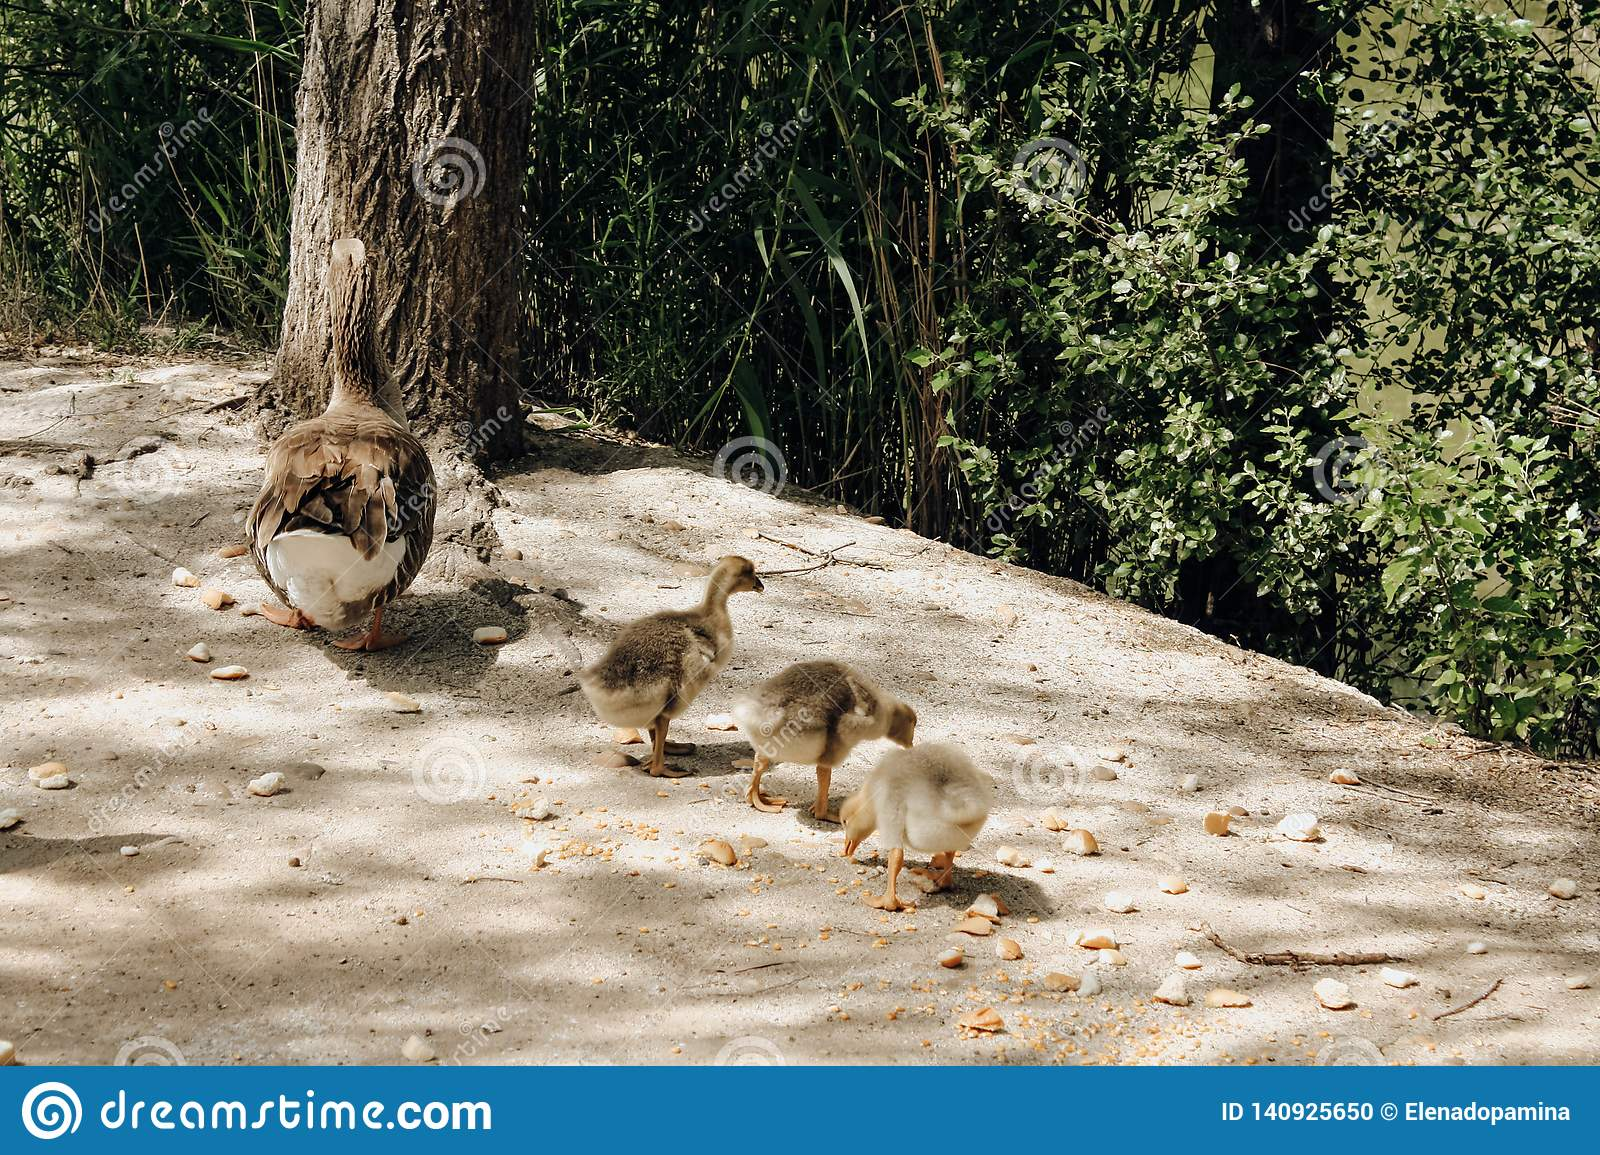 Three ducklings with their mother in the park